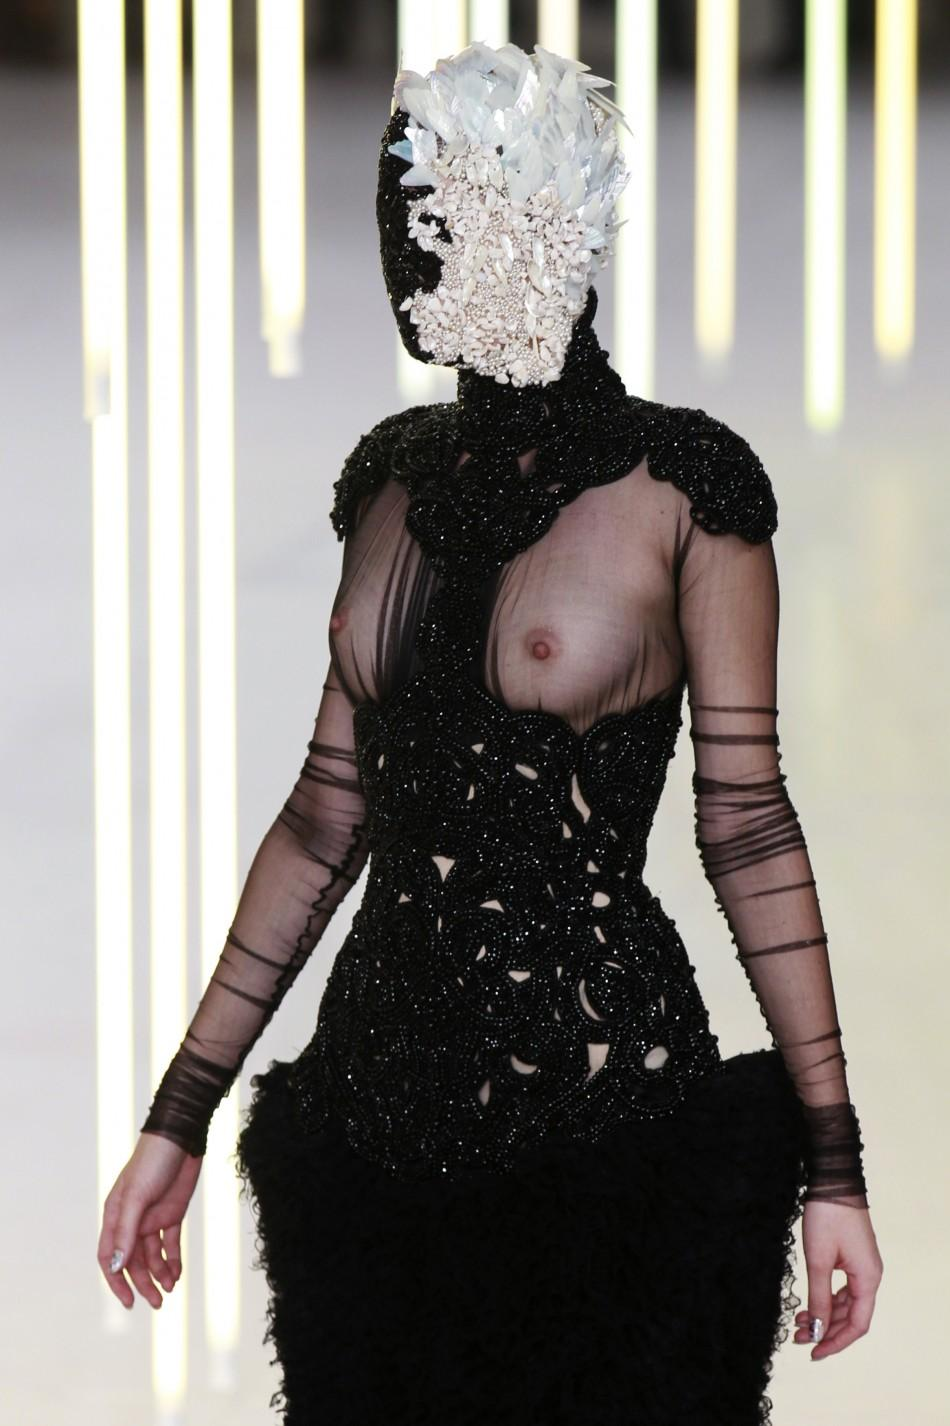 Paris Fashion Week: Sarah Burtons' Bold and Brilliant Creations for Alexander McQueen Leaves Awestruck [PHOTOS]